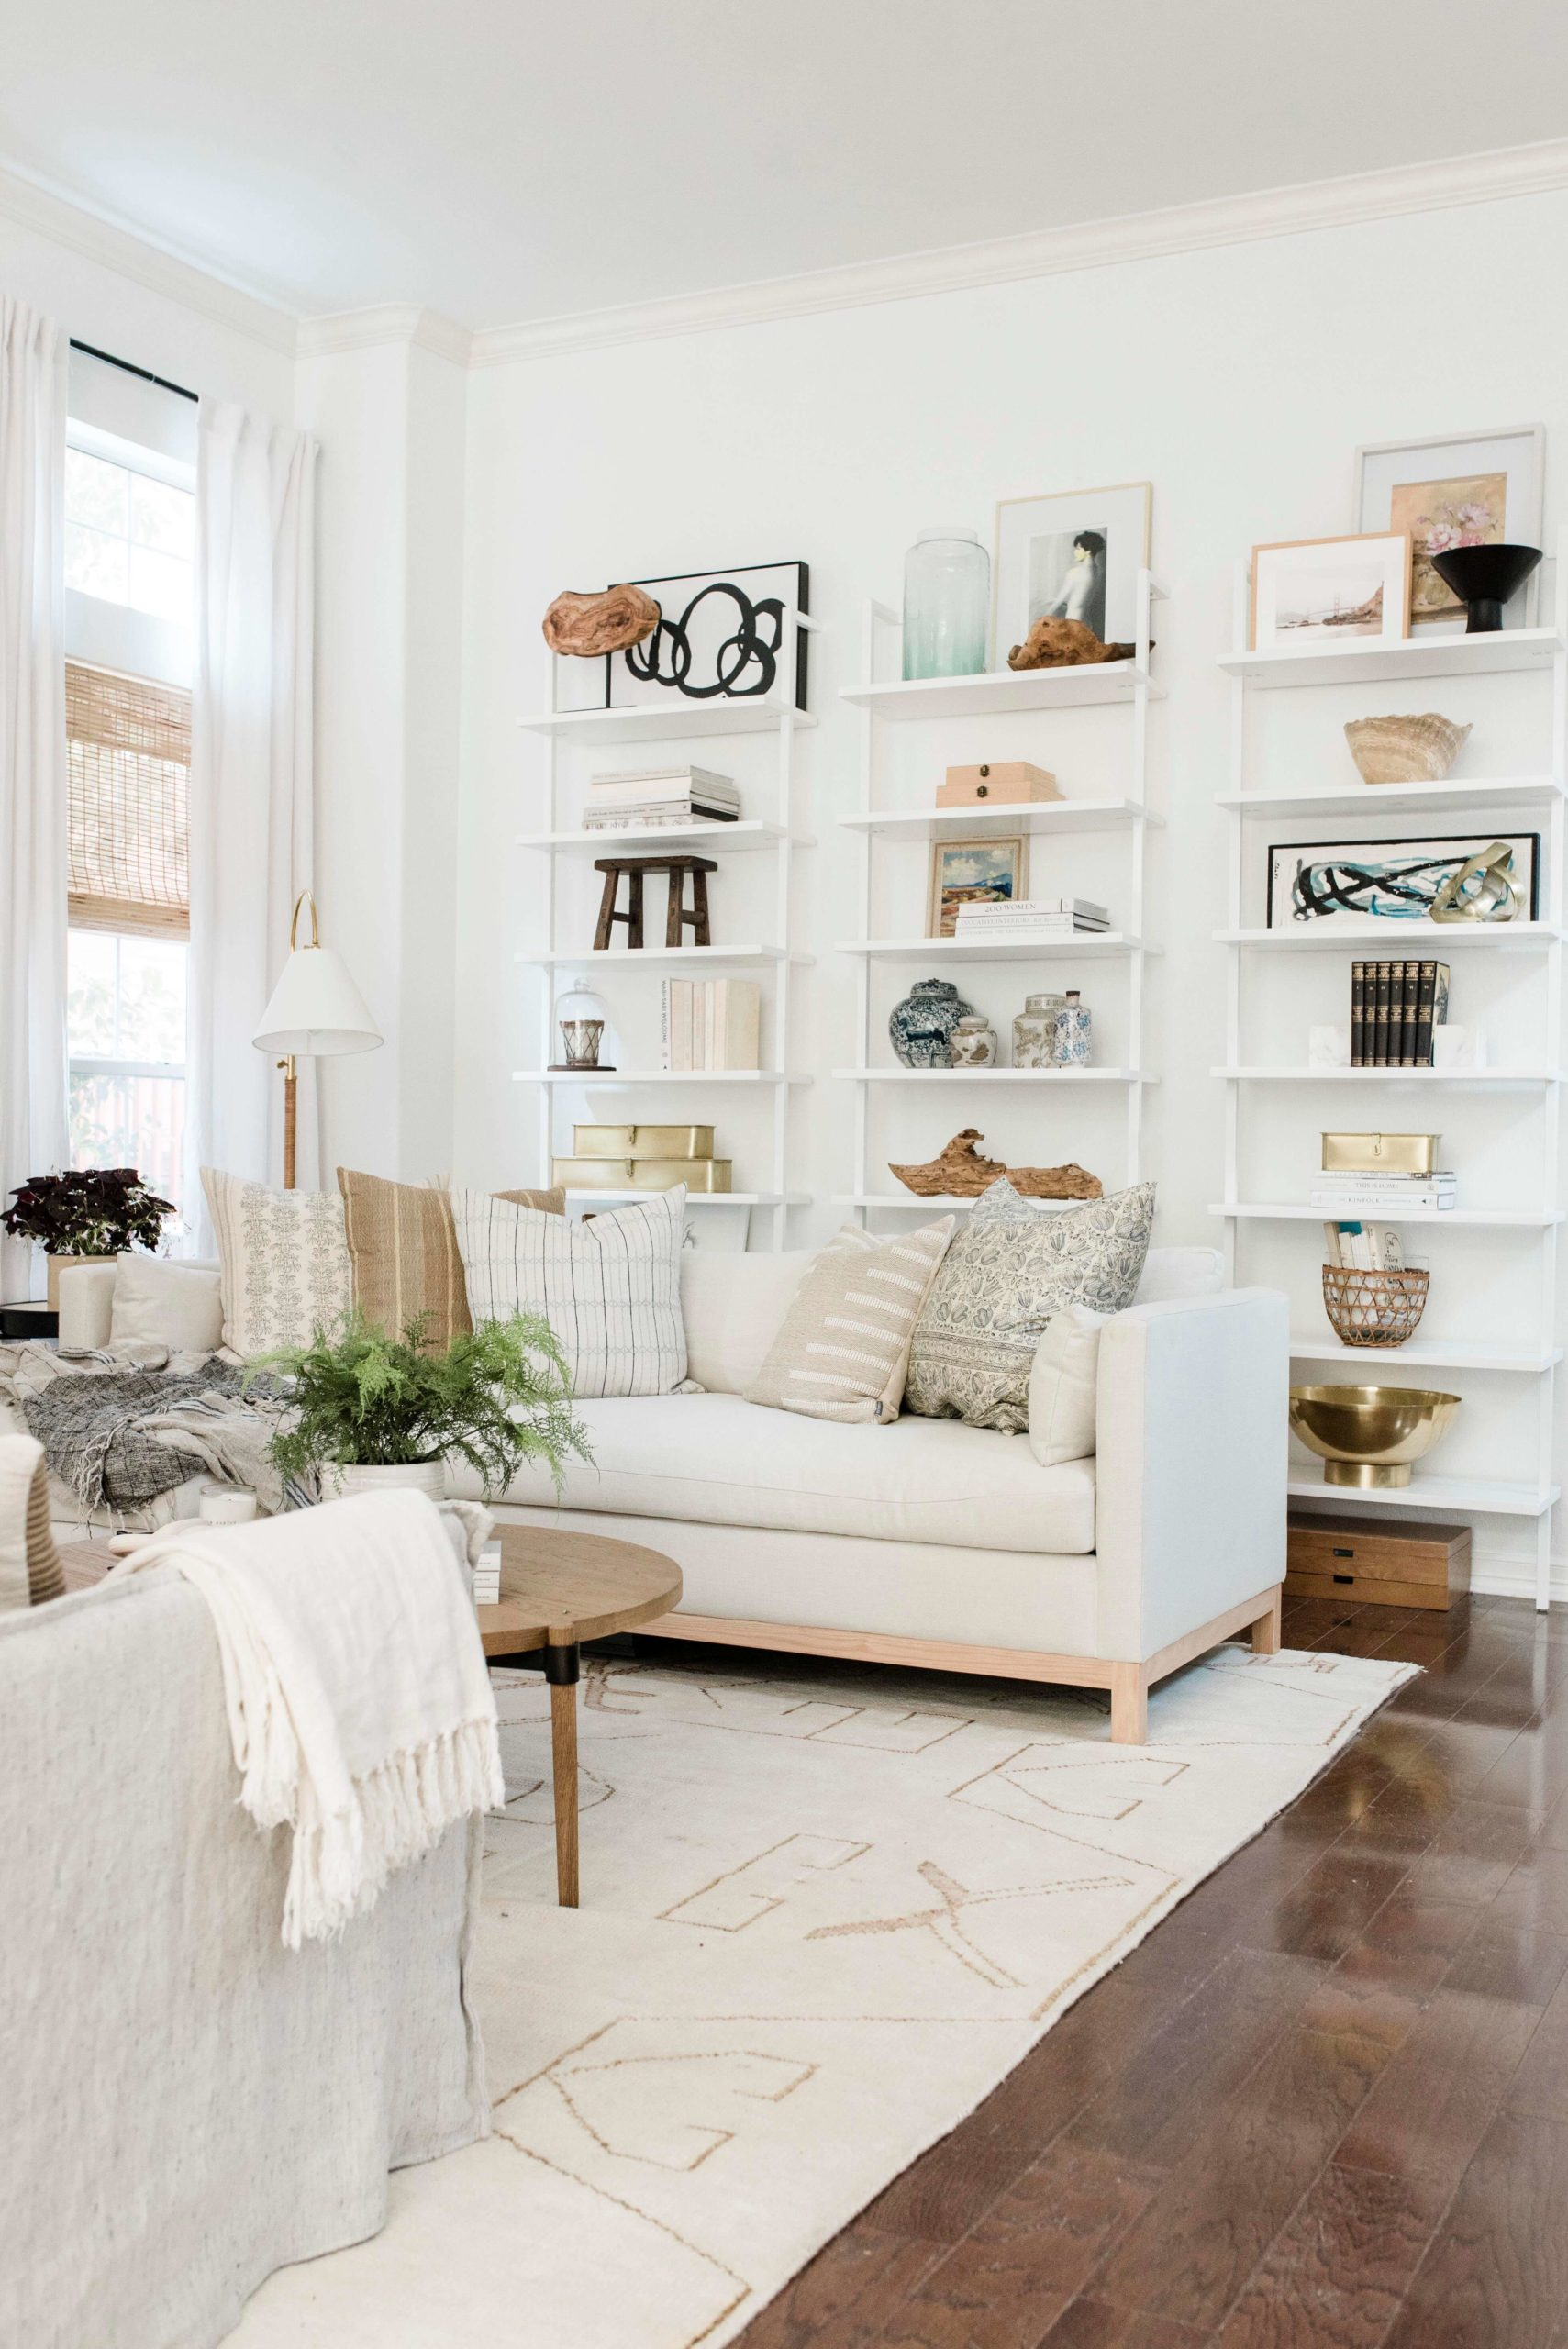 Modern Bright Living Room GMDxLG Furniture Collection Hollingworth Sofa by Los Angeles Designer Ginny Macdonald Design